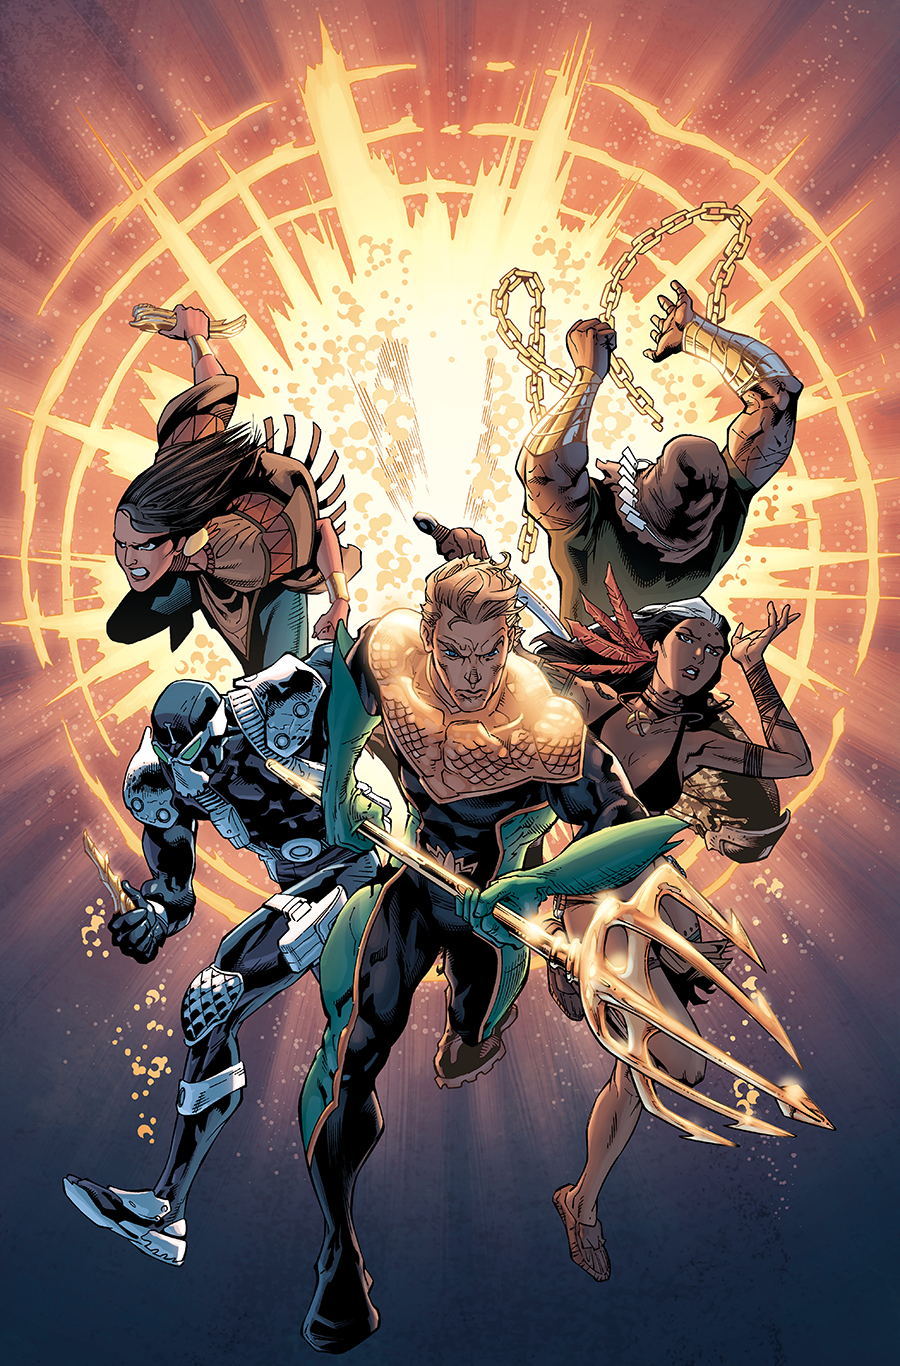 AQUAMAN AND THE OTHERS FUTURES END #1